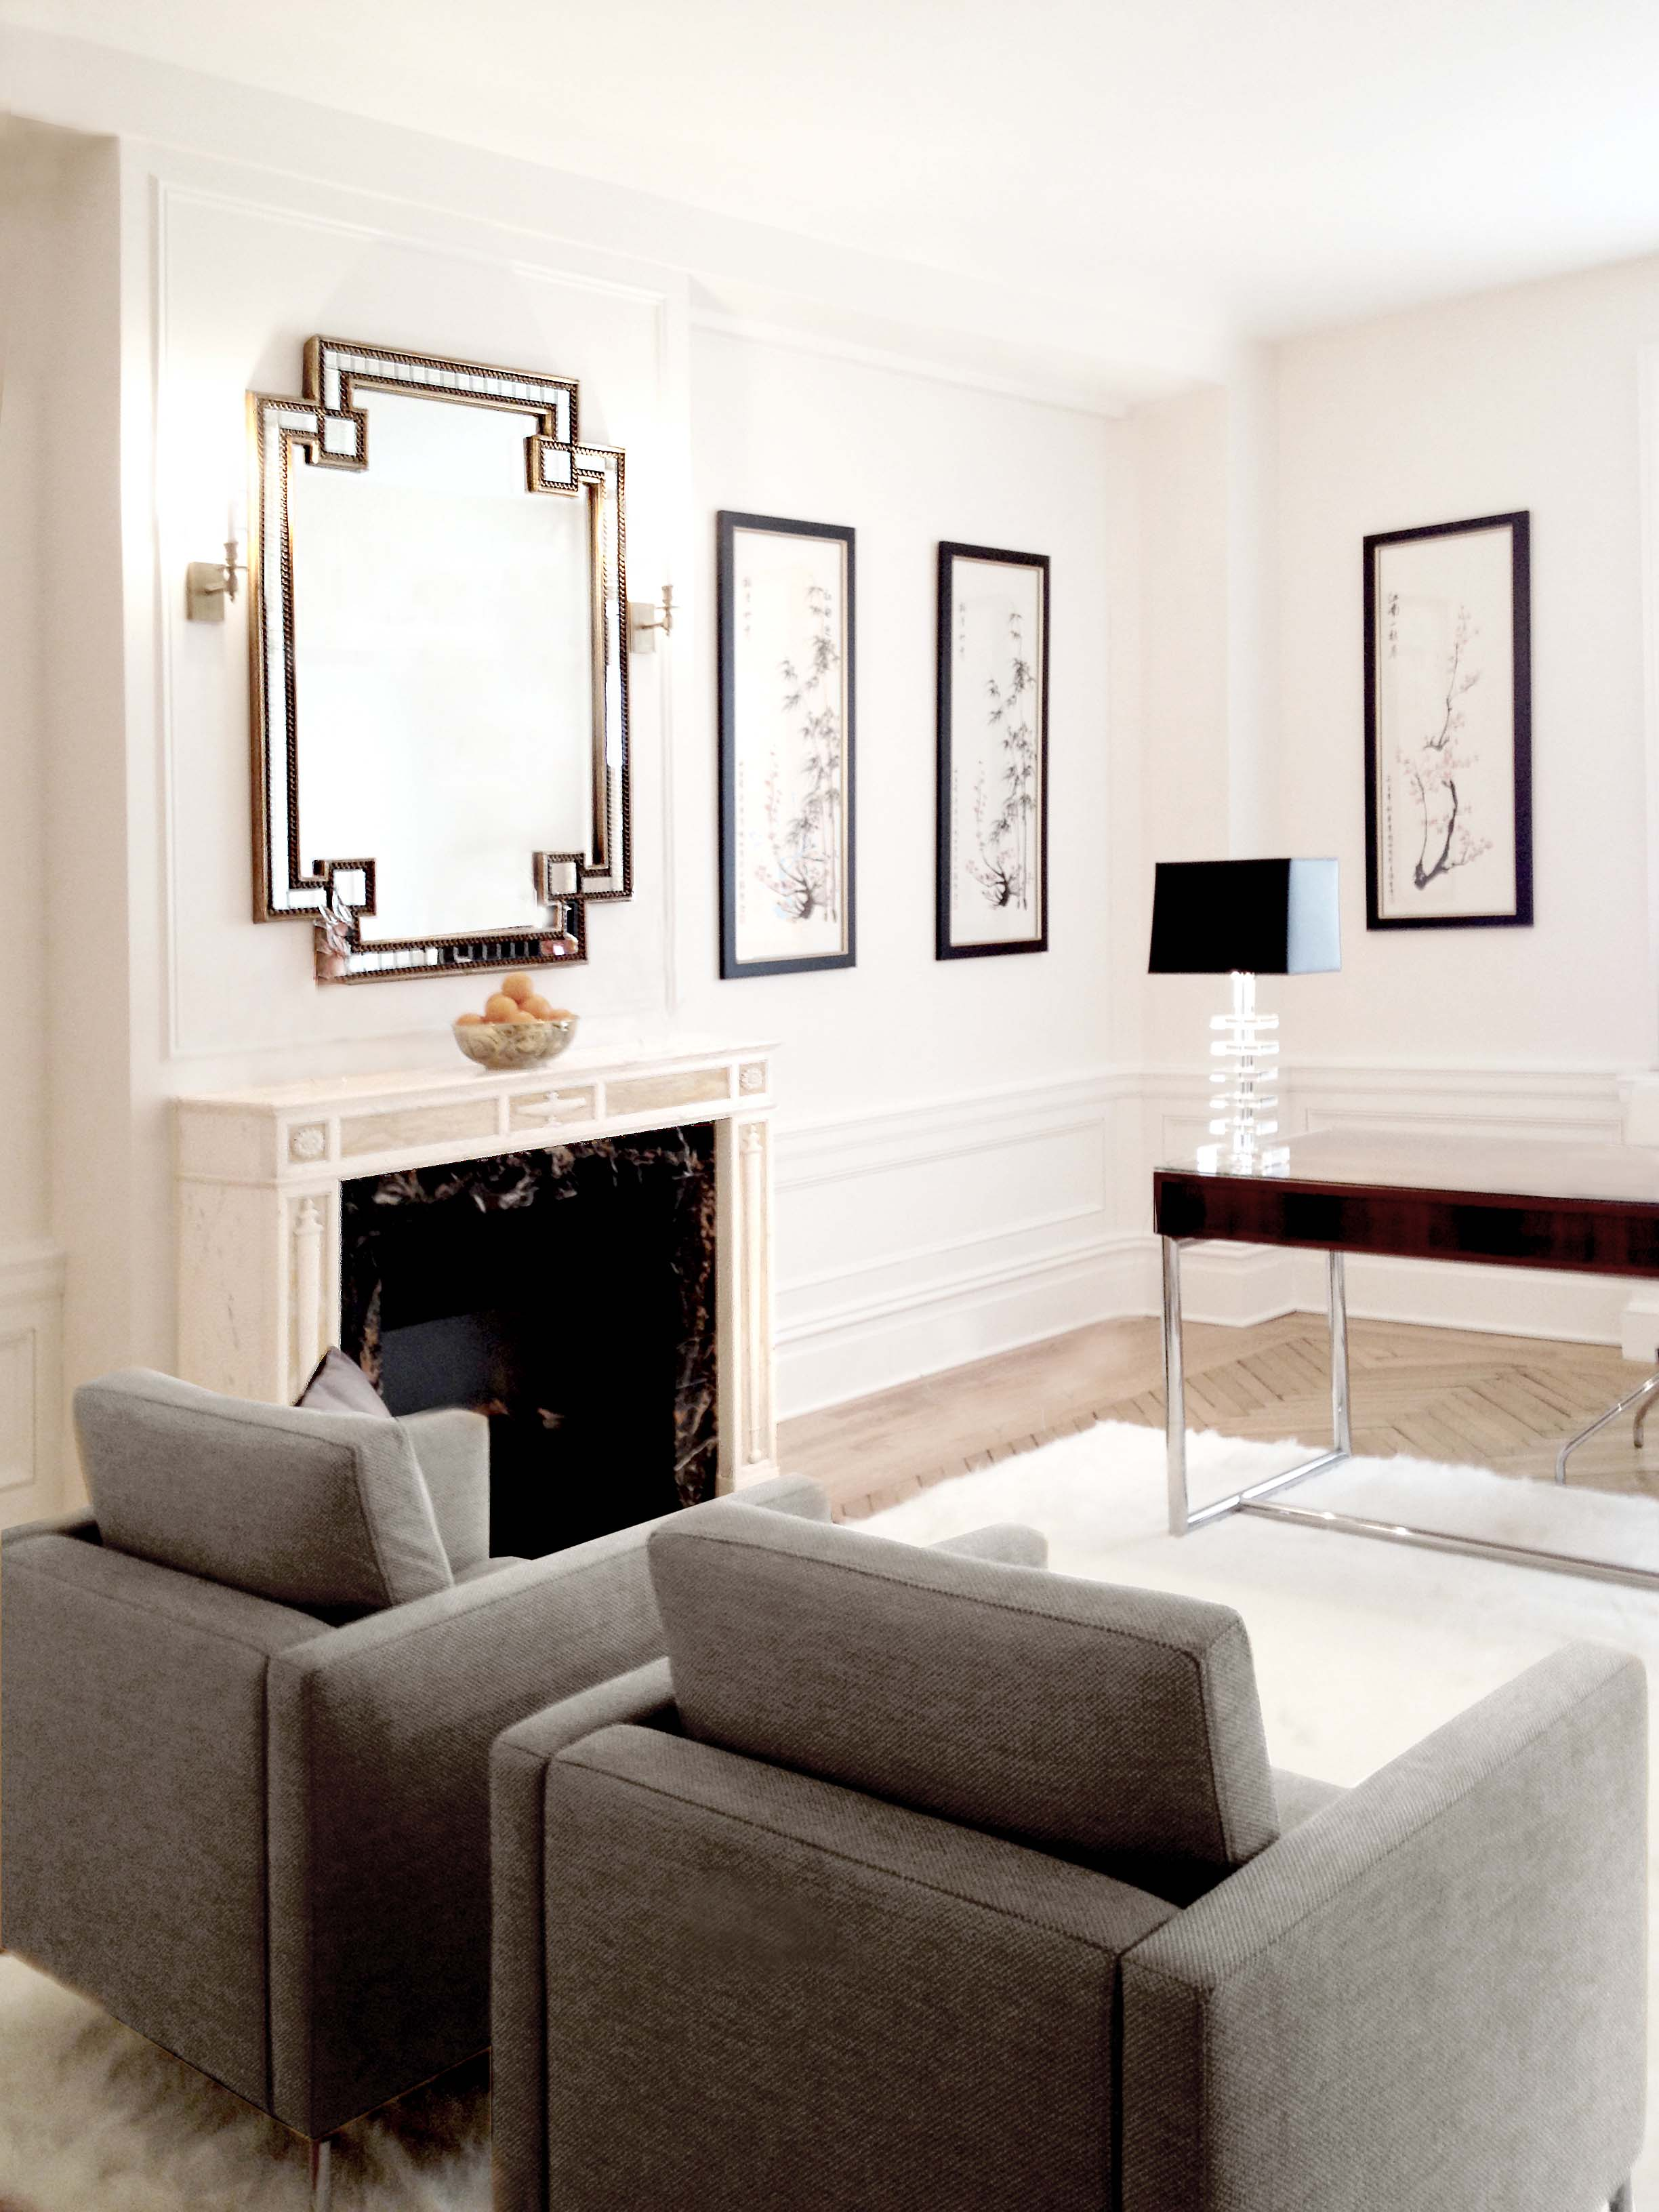 9_MADISON AVENUE RESIDENCE alt.jpg